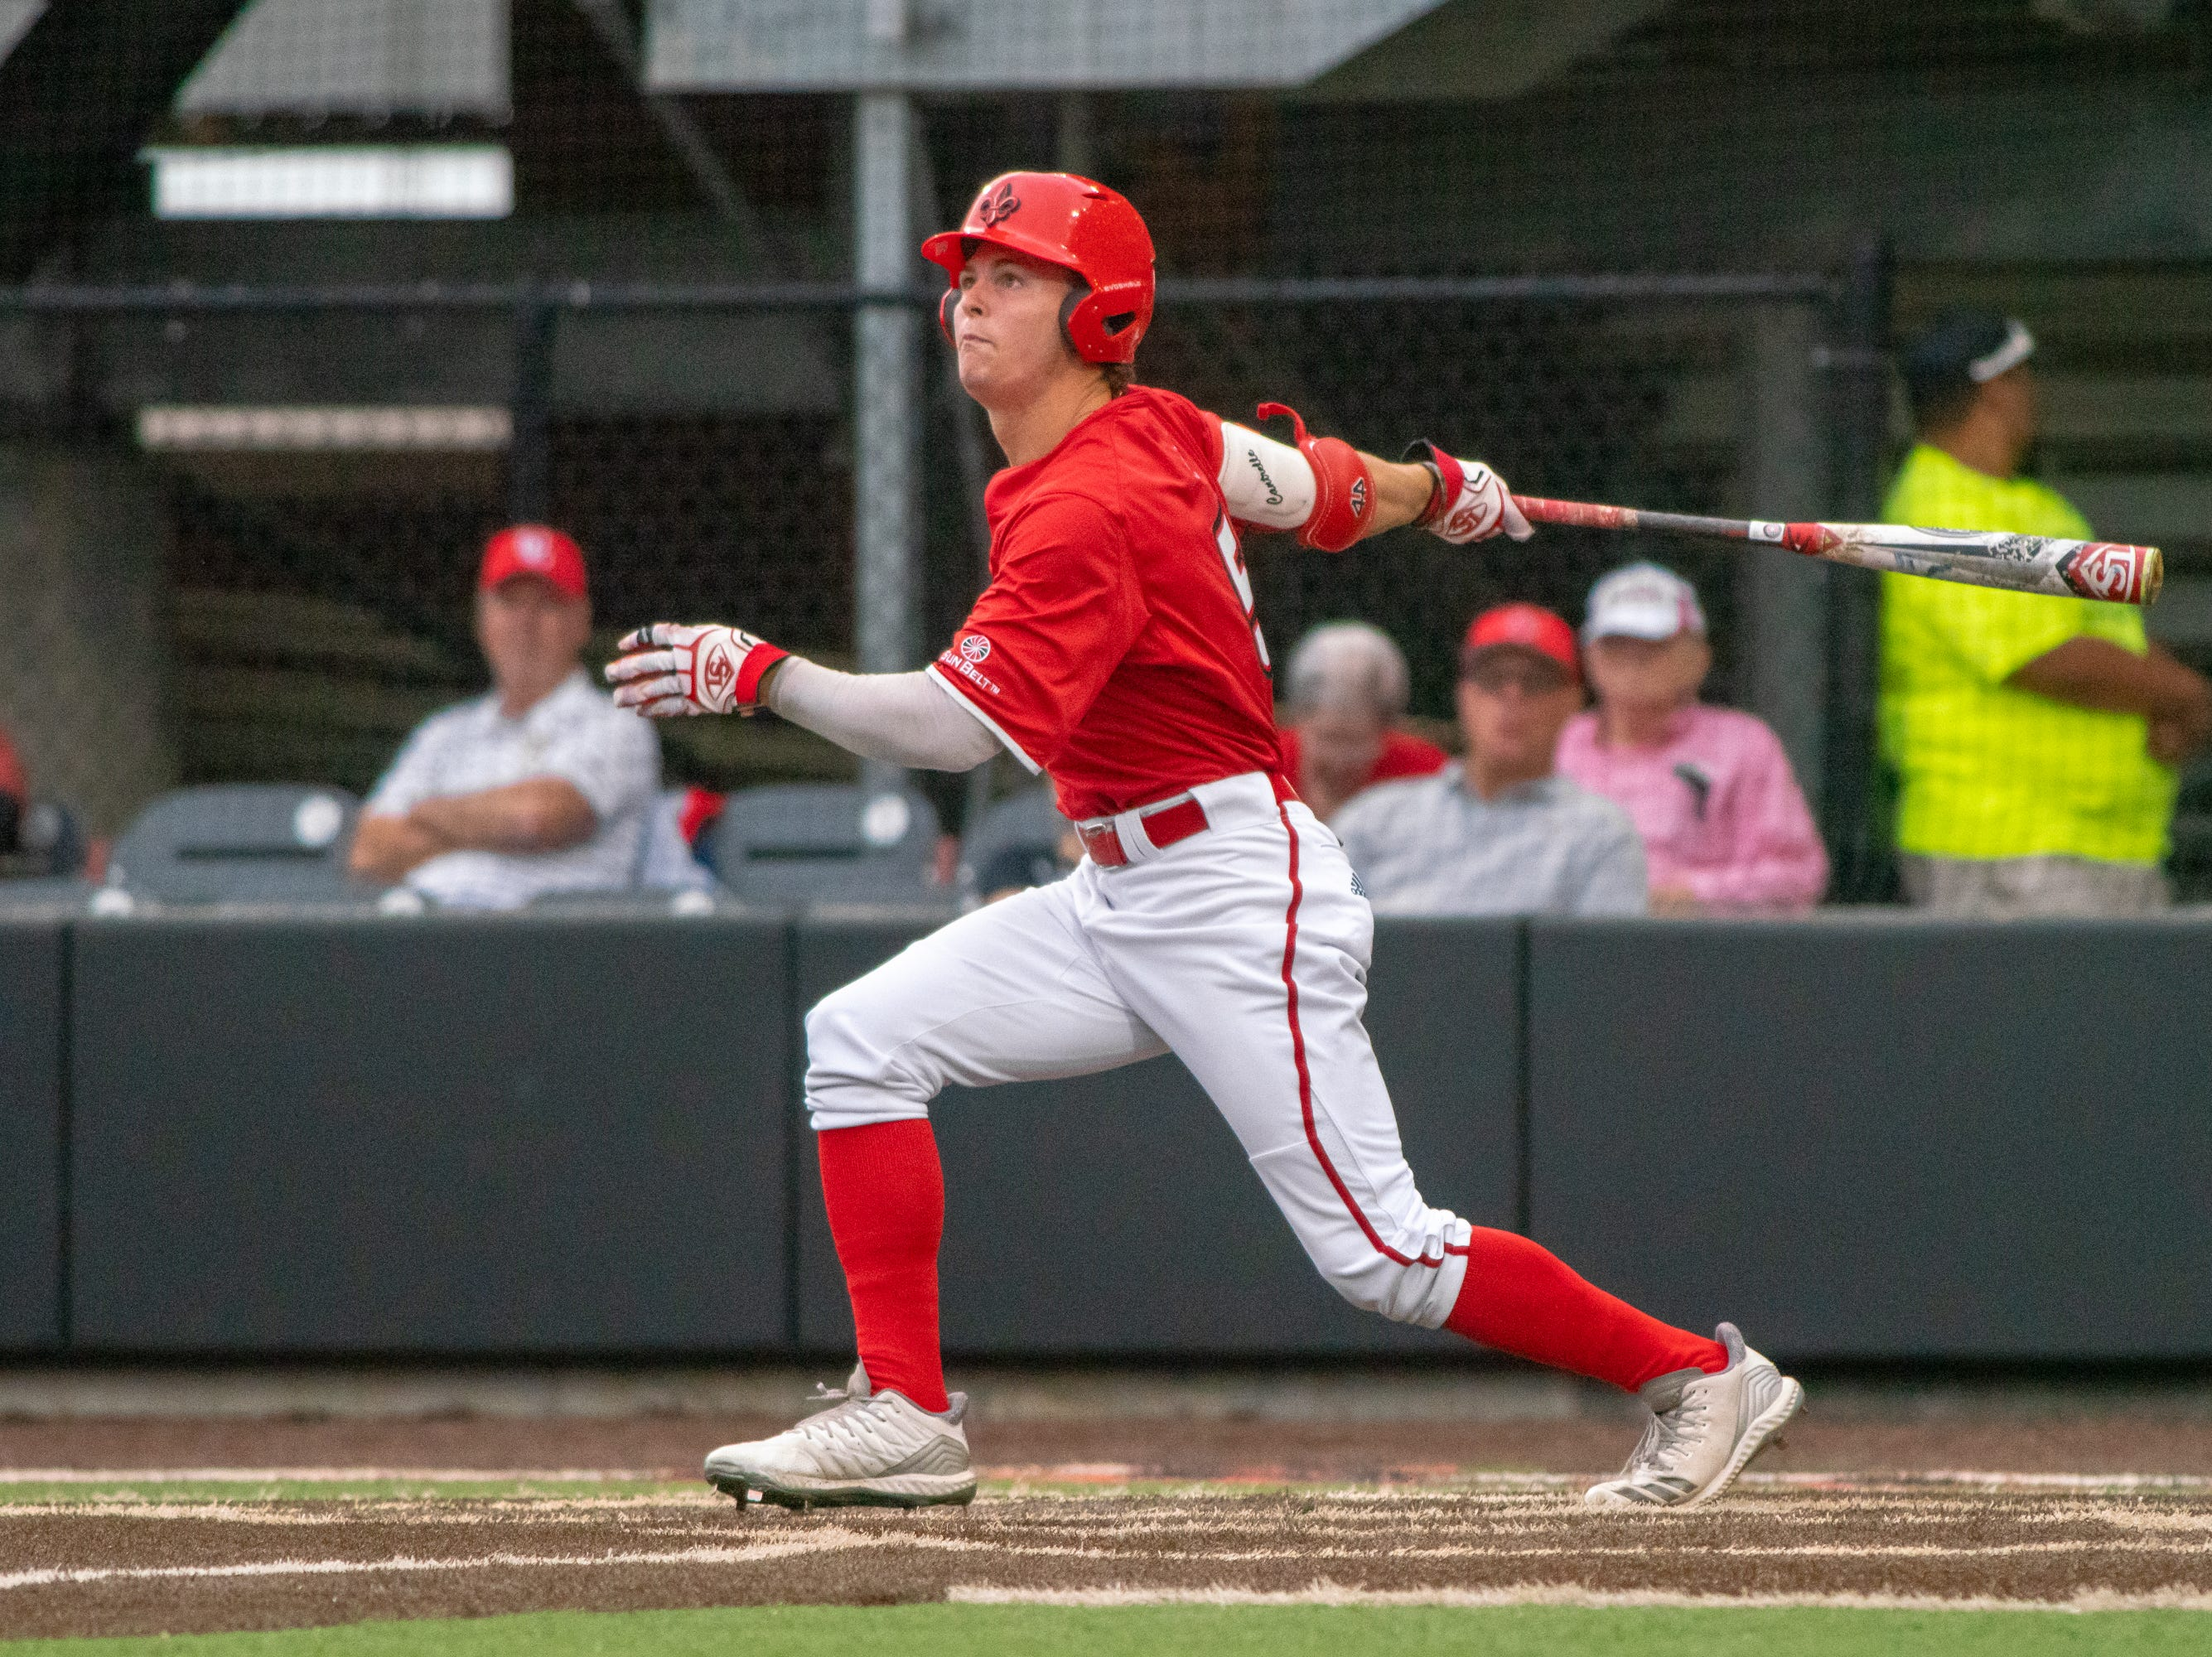 """UL's Hayden Cantrelle watches the ball fly as the Ragin' Cajuns take on the South Alabama Jaguars at M.L. """"Tigue"""" Moore Field on Friday, April 4, 2019."""